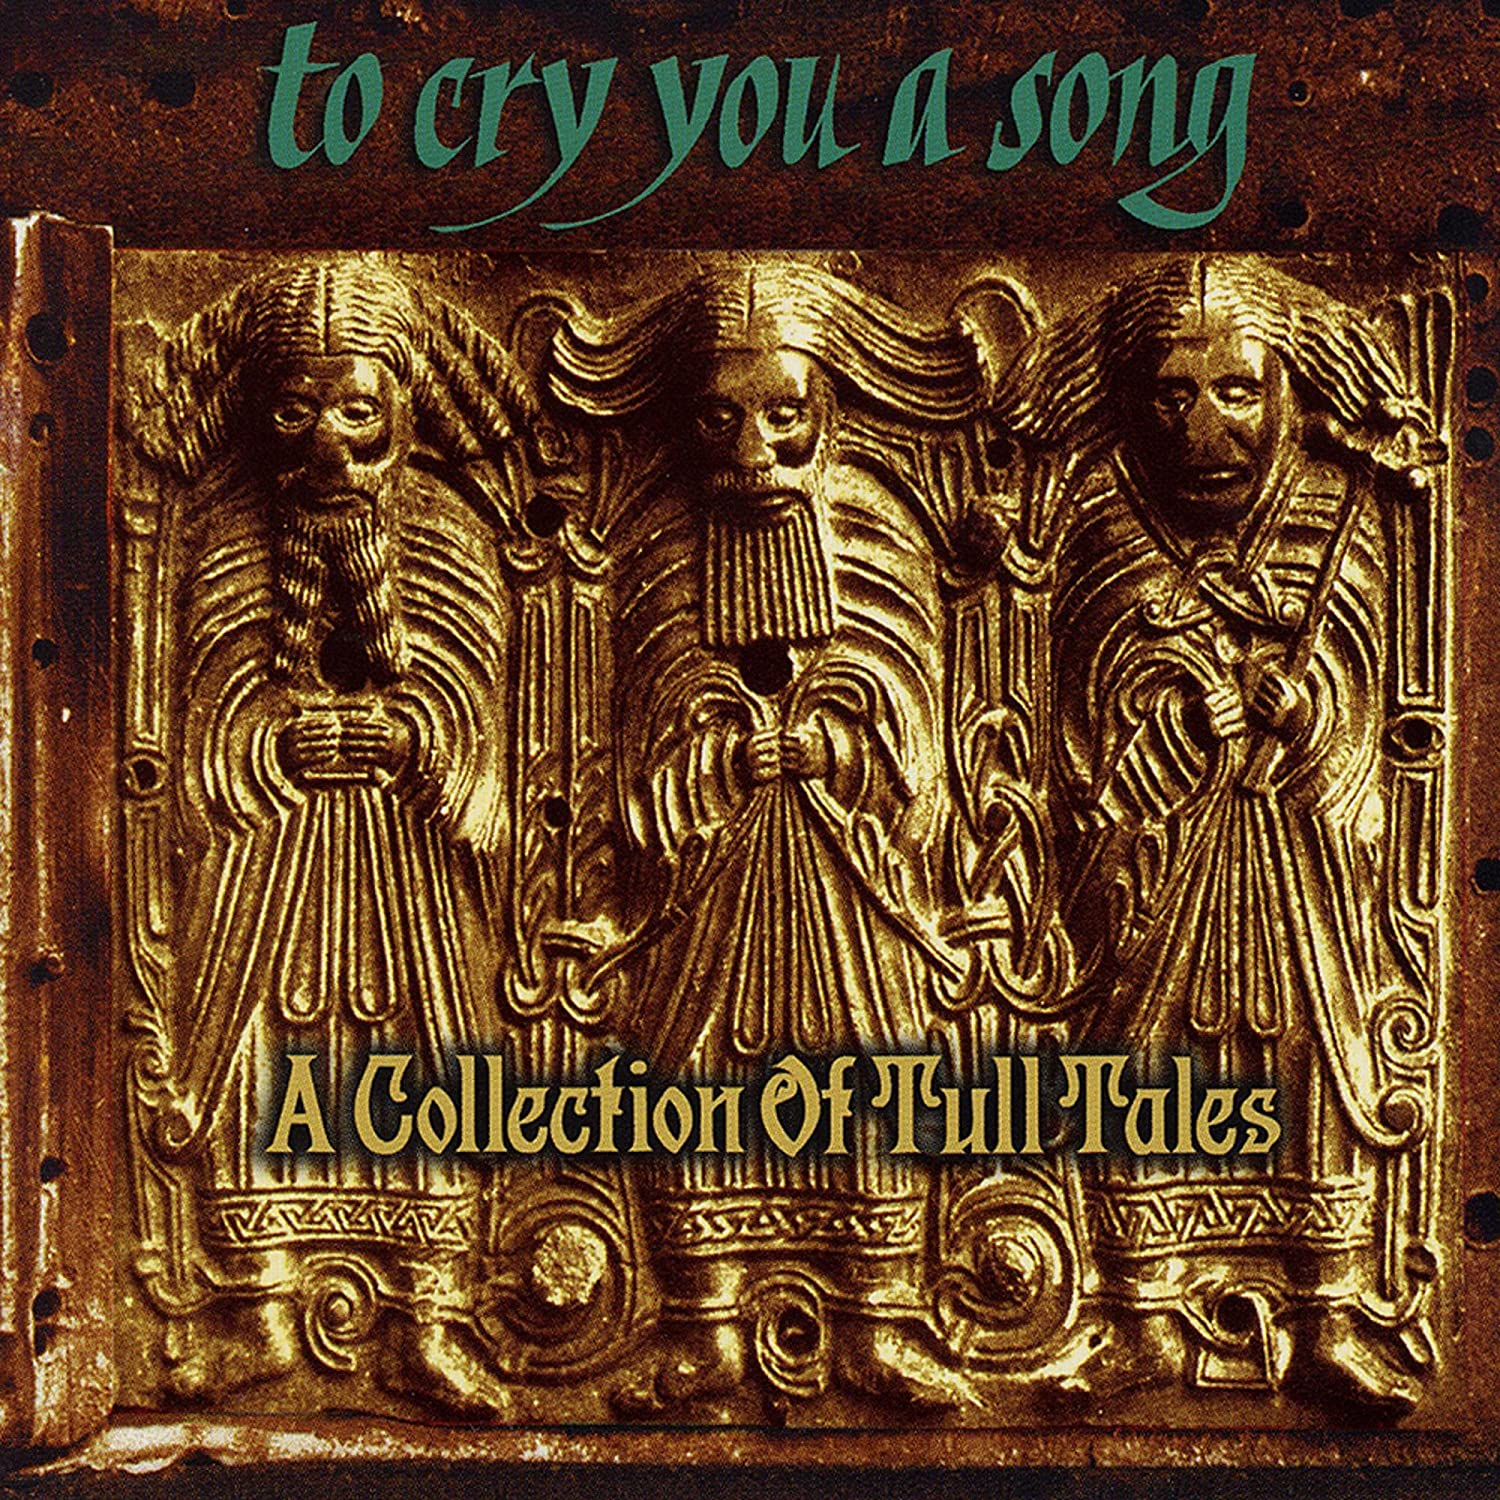 To Cry You A Tribute Tull Song Animer and price revision Max 47% OFF Jethro